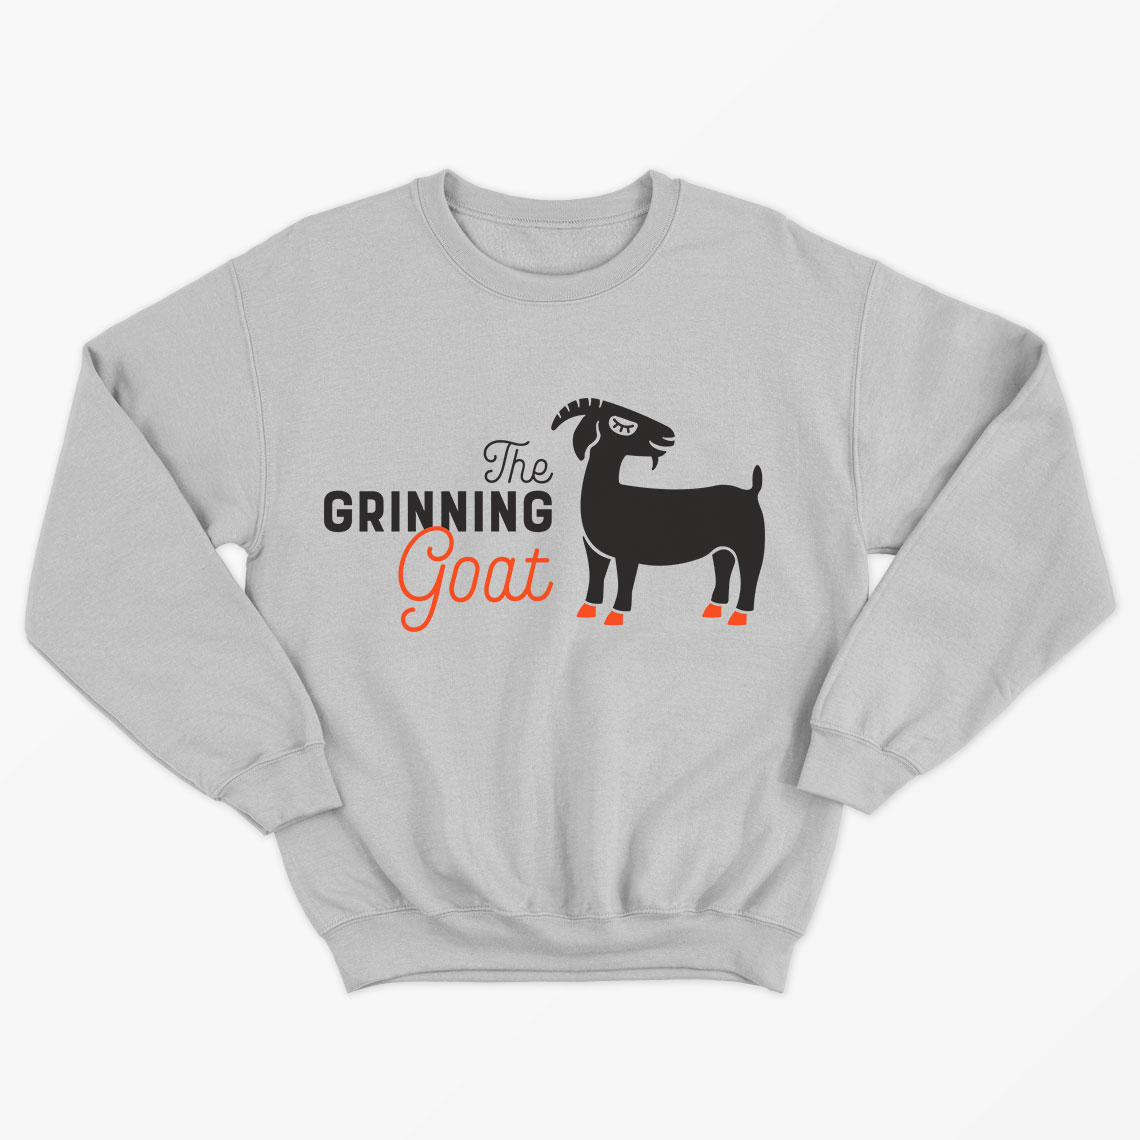 the grinning goat sweater design